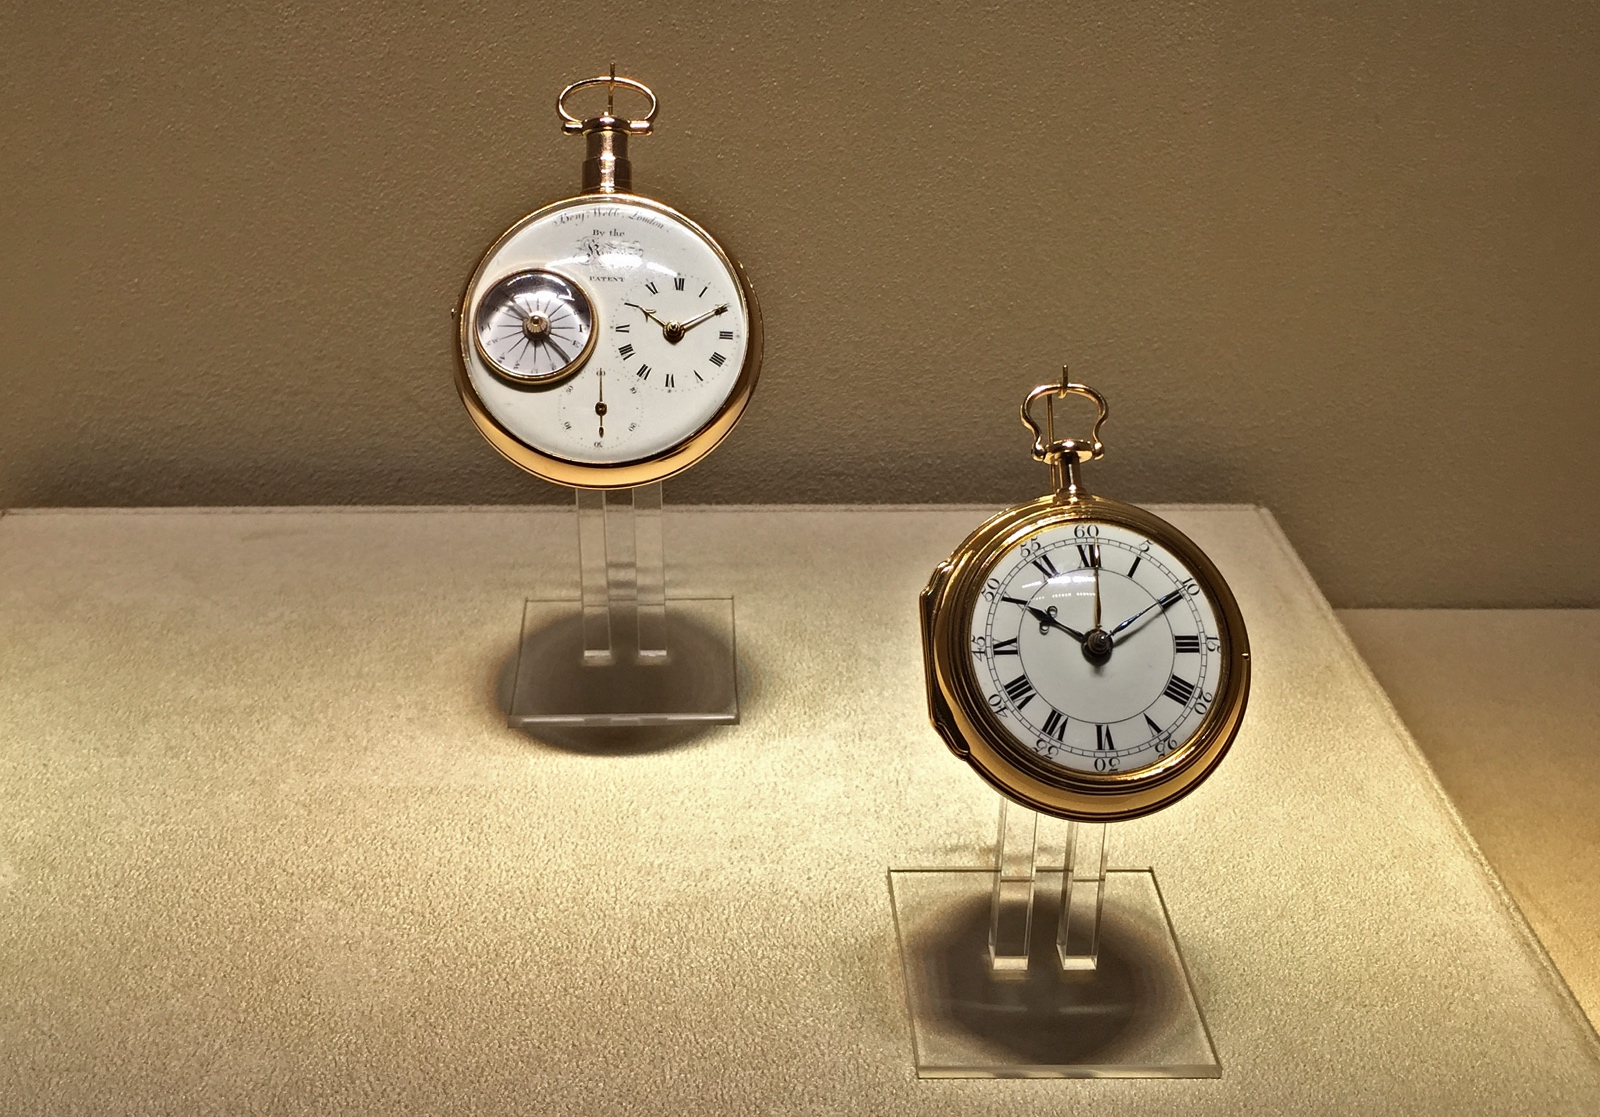 Patek Philippe Watch Art Grand Exhibition London museum watches 2